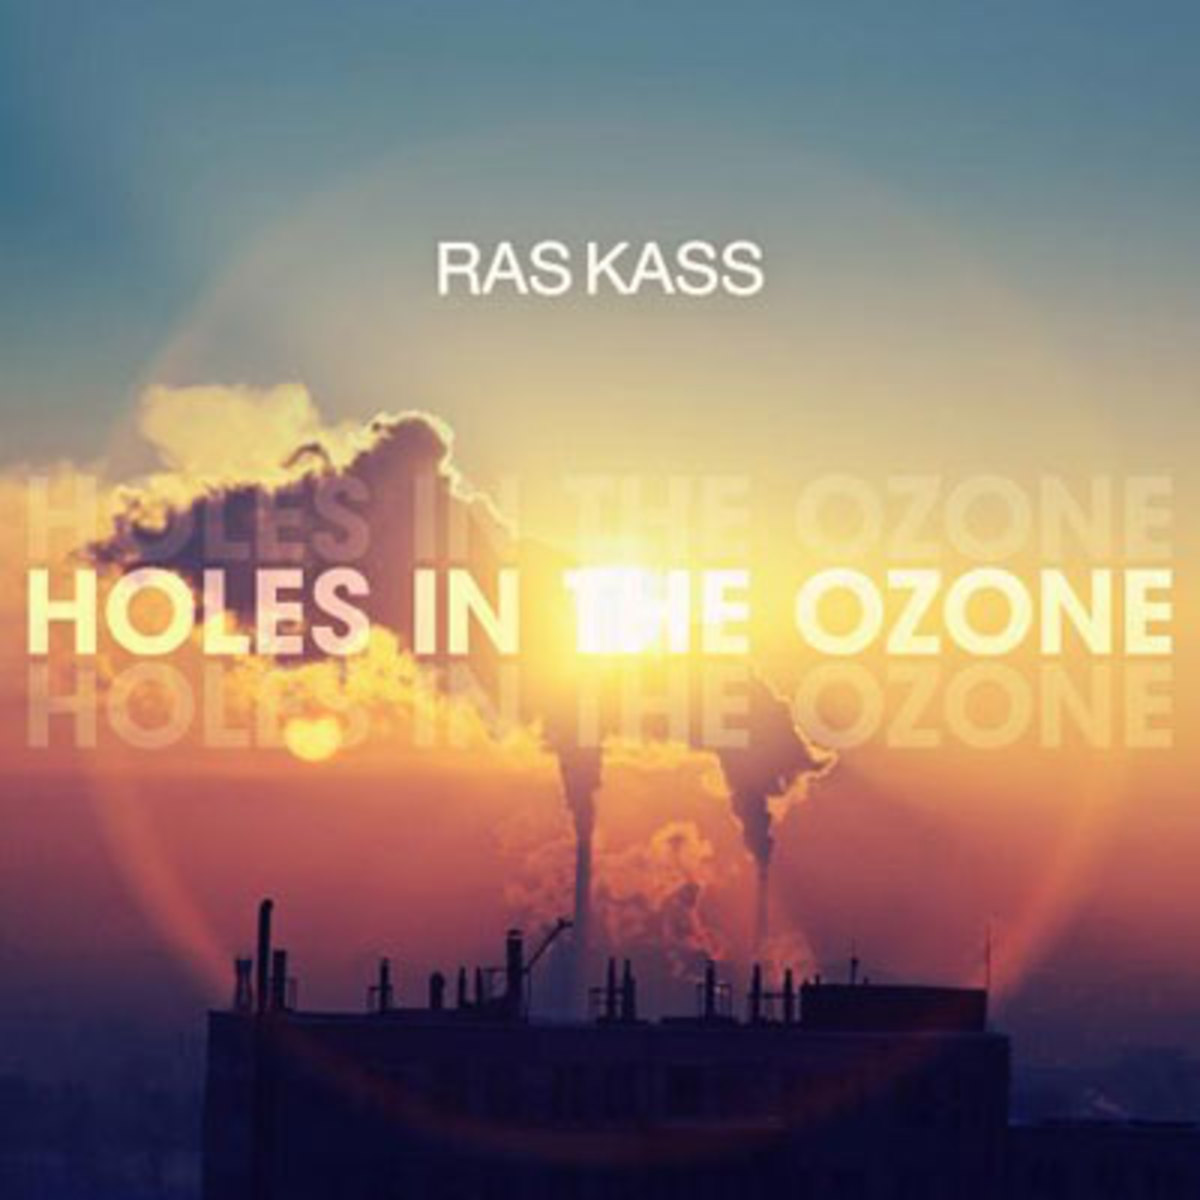 raskass-holesinozone.jpg